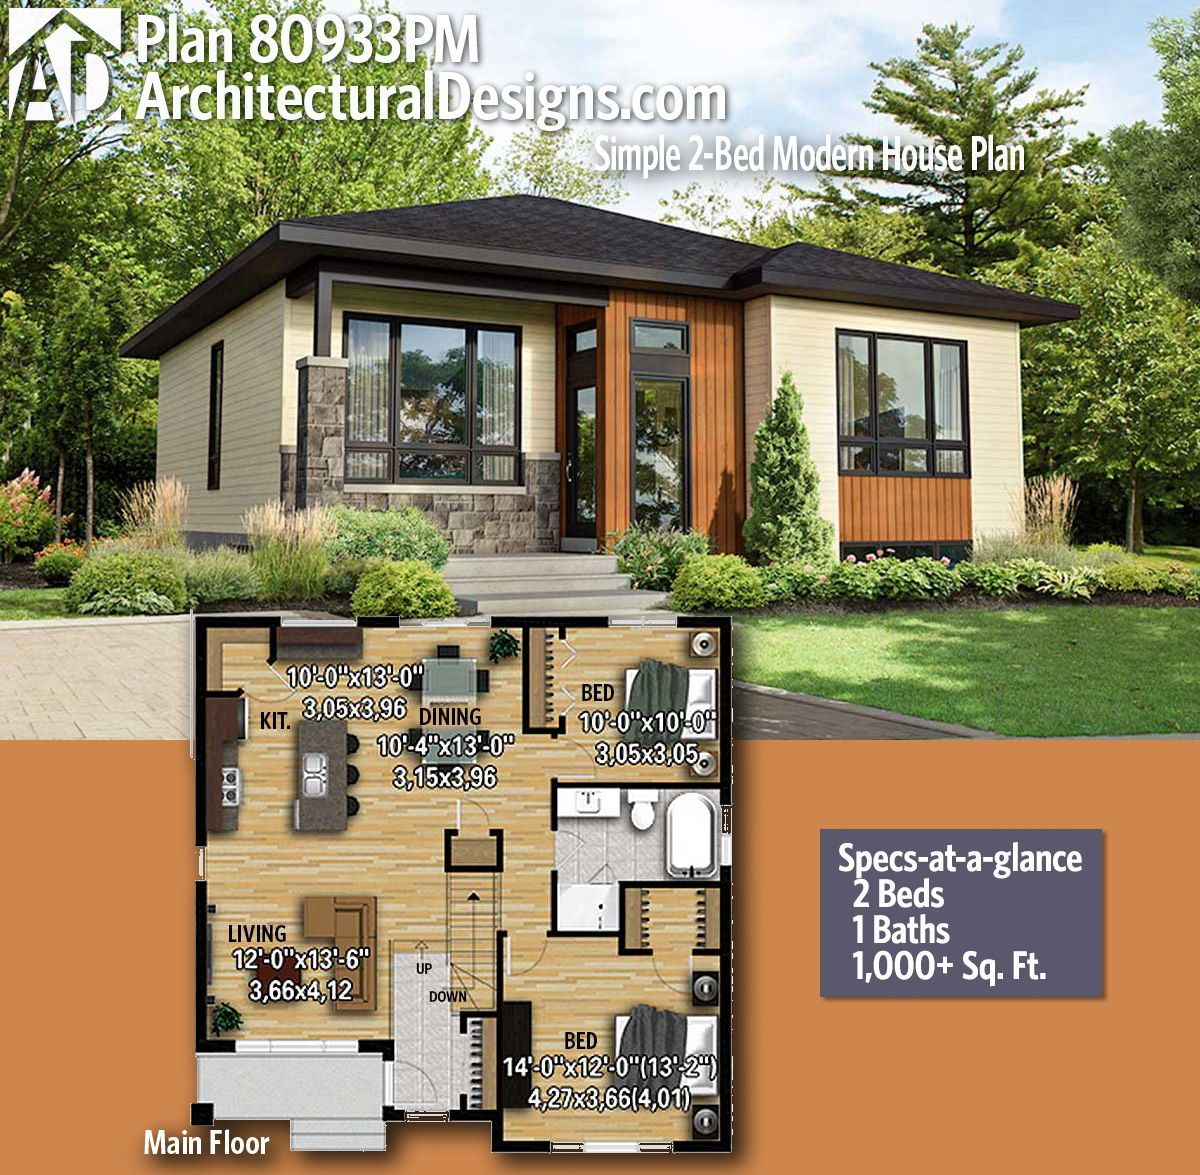 Plan 8PM: Simple 8-Bed Modern House Plan  House layouts